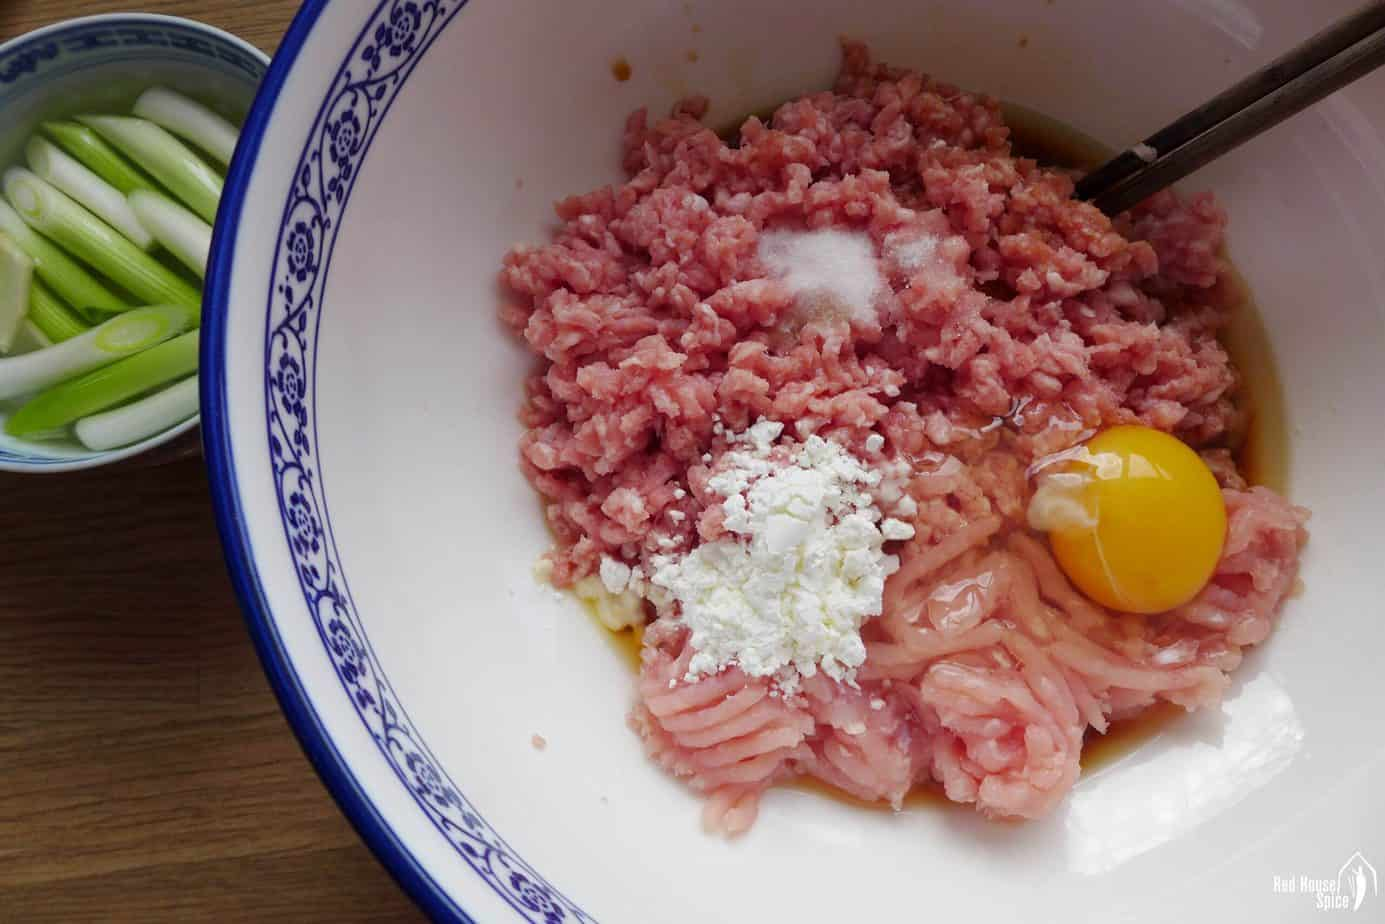 Minced pork with seasonings and an egg